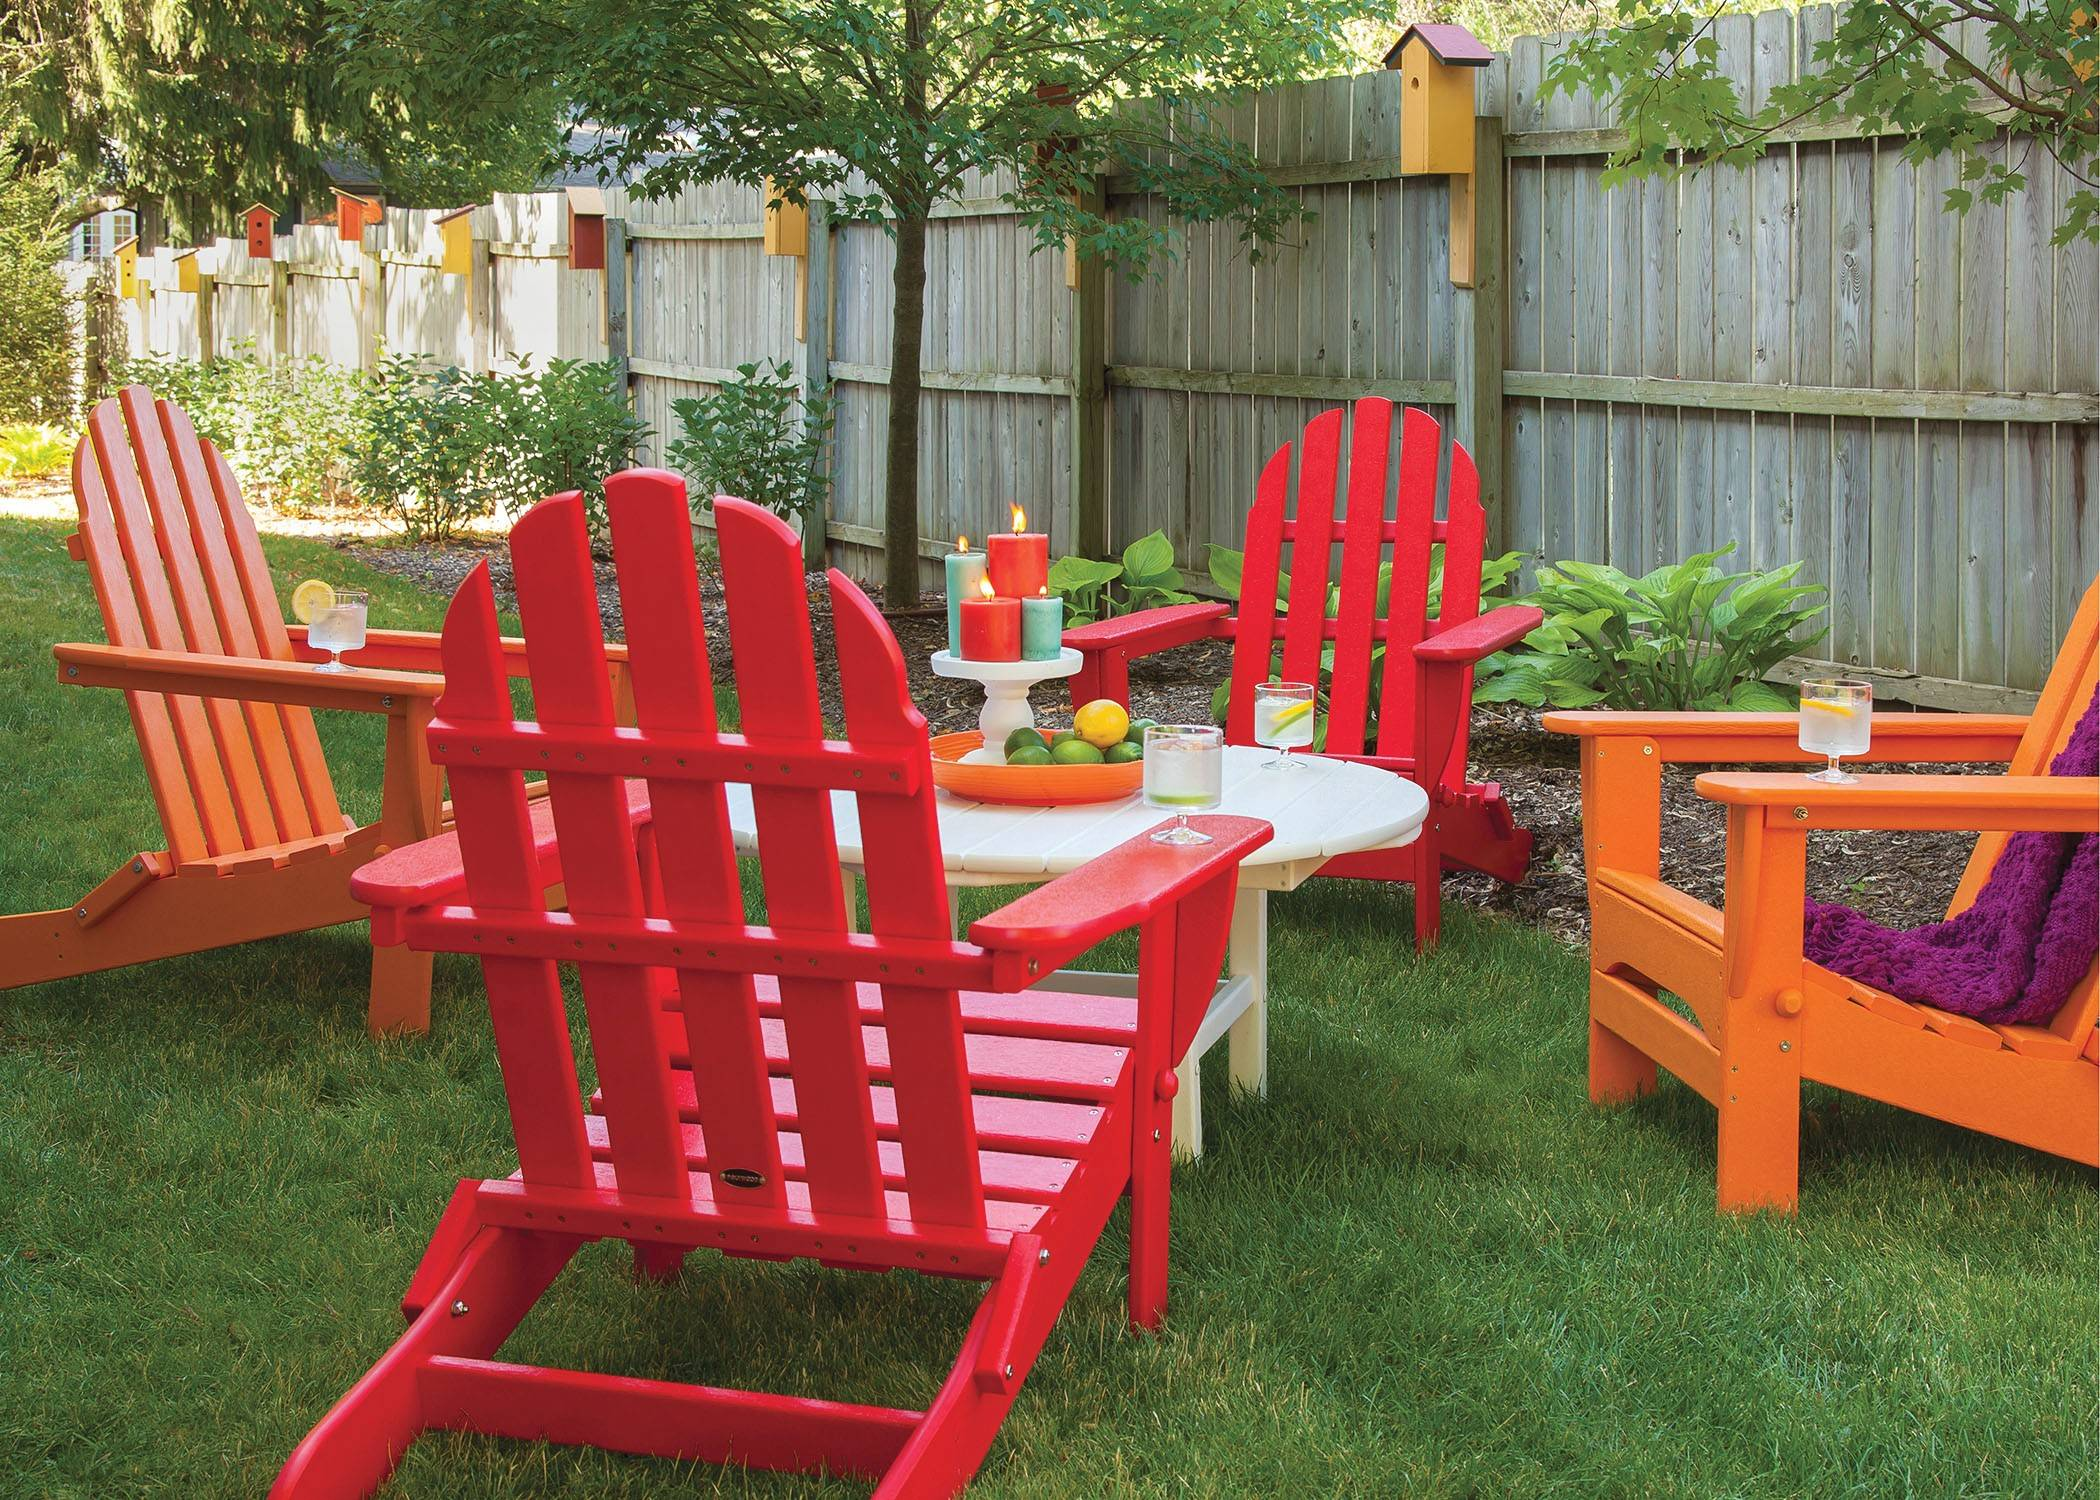 Old school, new style: A conversational grouping of Poly-Wood's classic Adirondack chairs and a woven rocker made from recycled plastic. At the end of its life as seating, the furniture can be recycled and remade into something new.